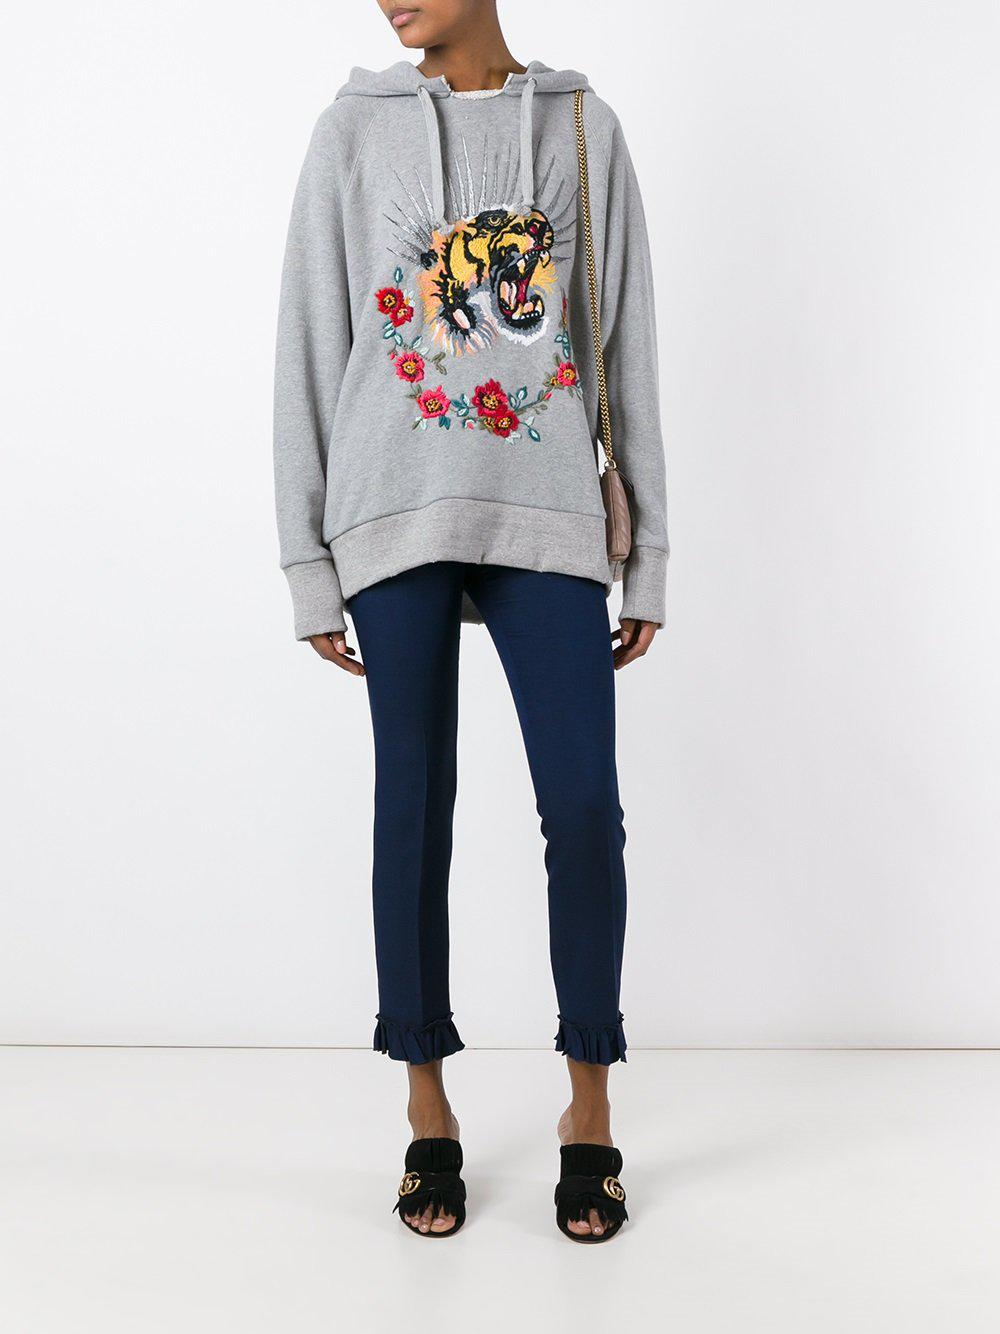 3e92522dc59 Lyst - Gucci Tiger Embroidered Hooded Sweatshirt in Gray